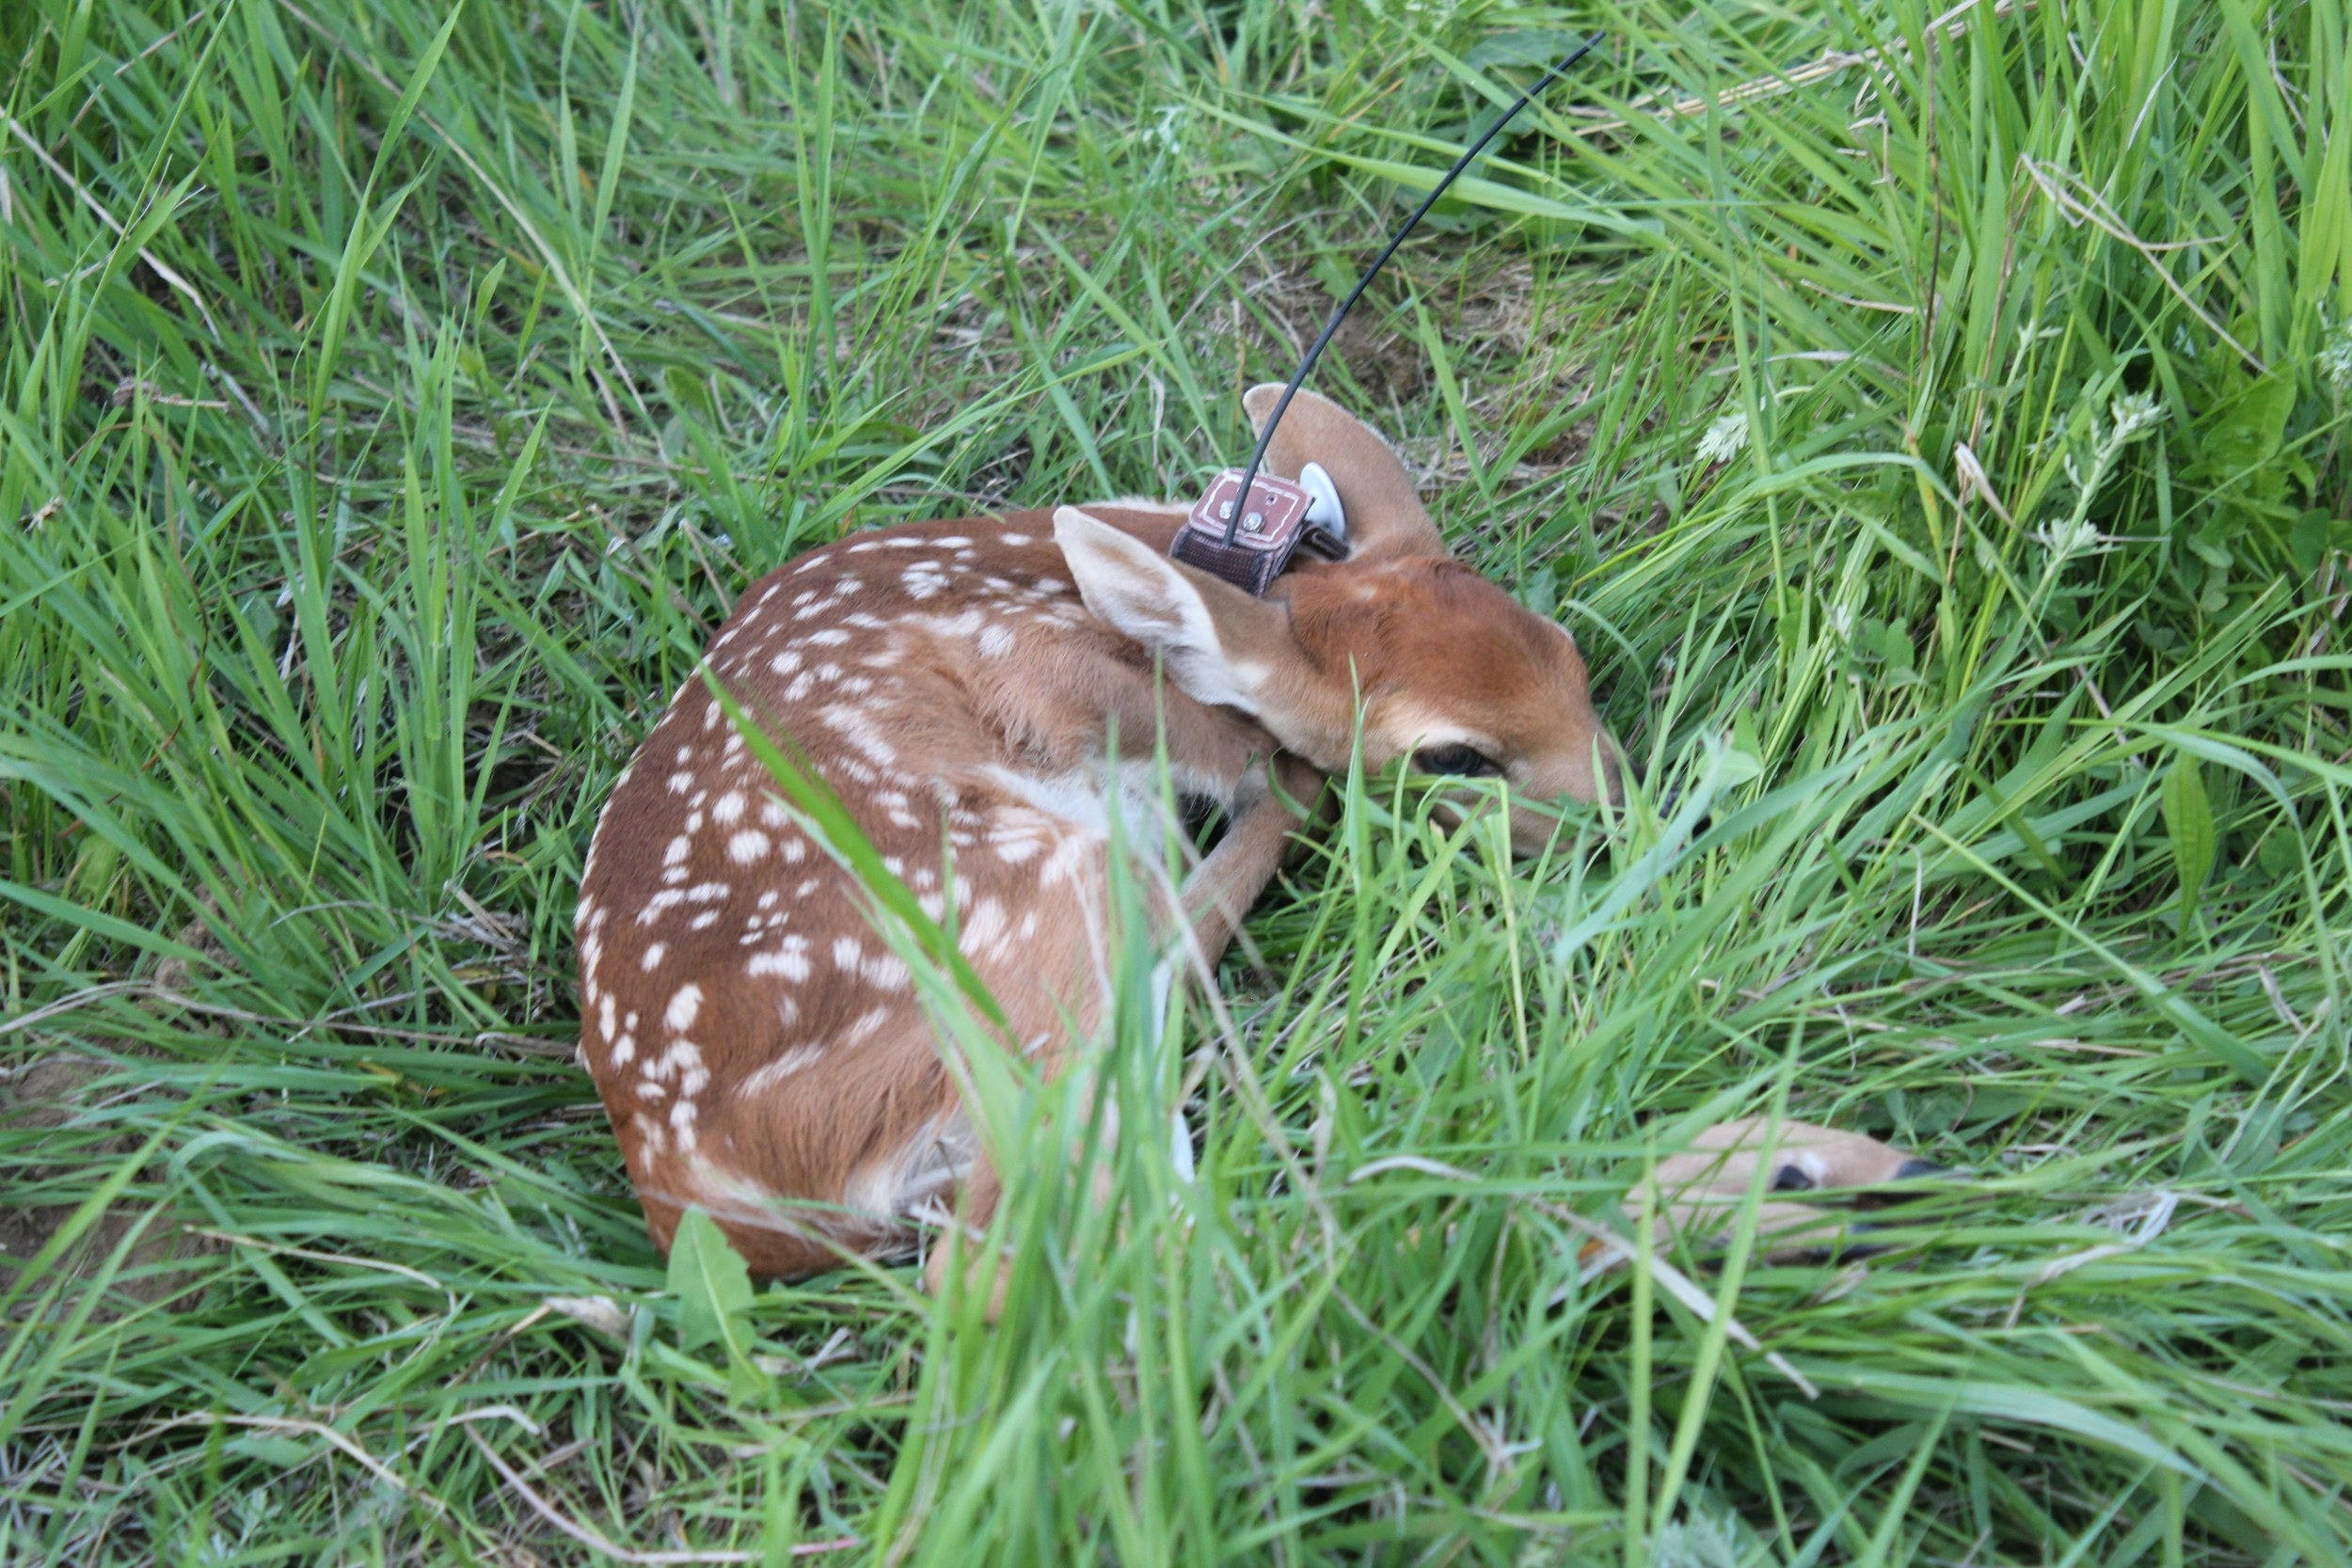 First collared fawn (photo: L Prugh)